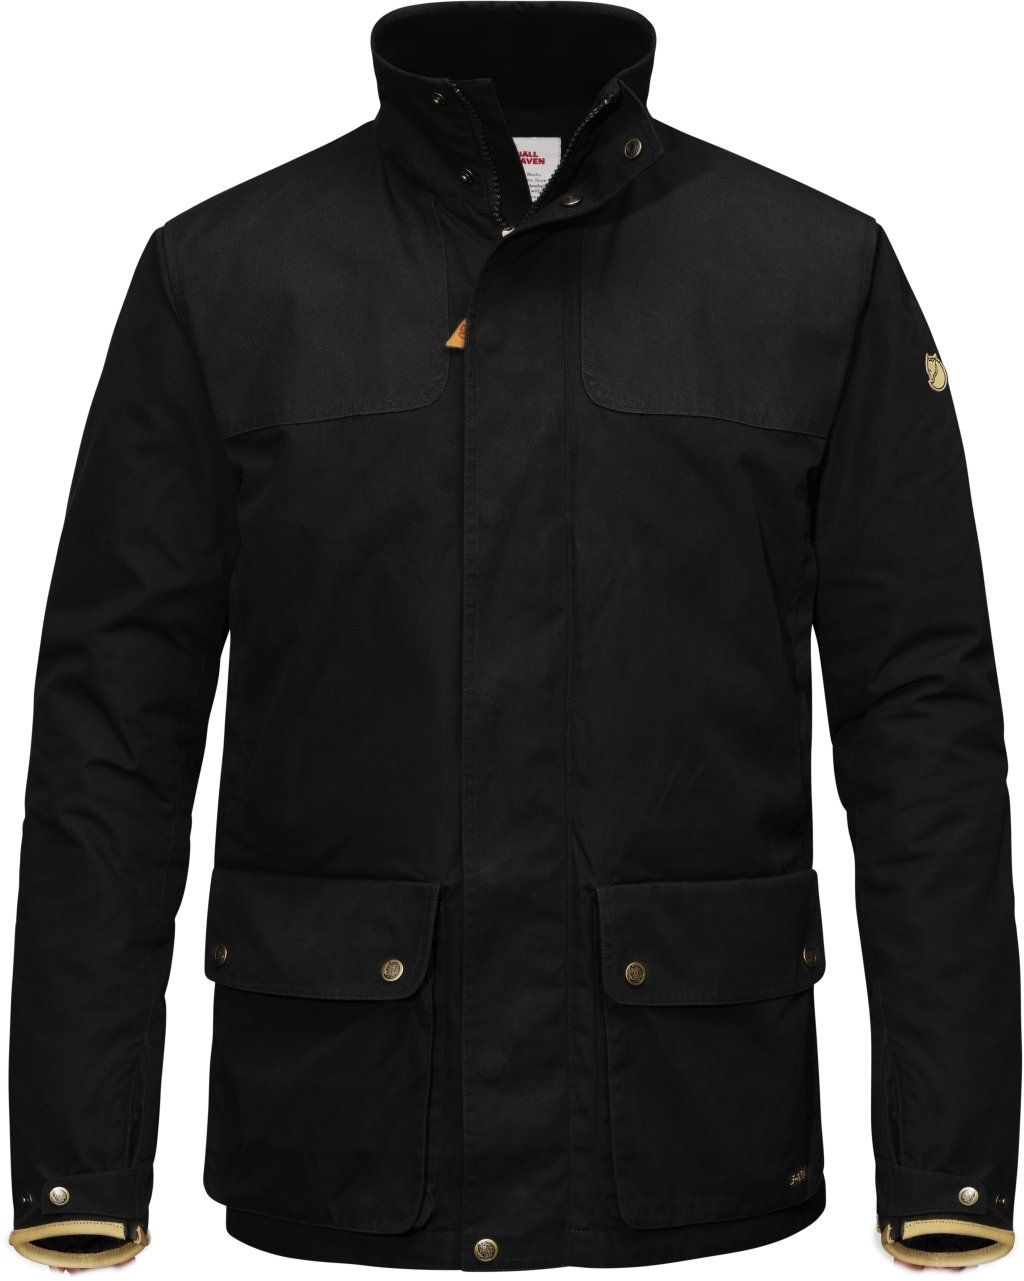 FjallRaven Sormland Padded Jacket Black-30